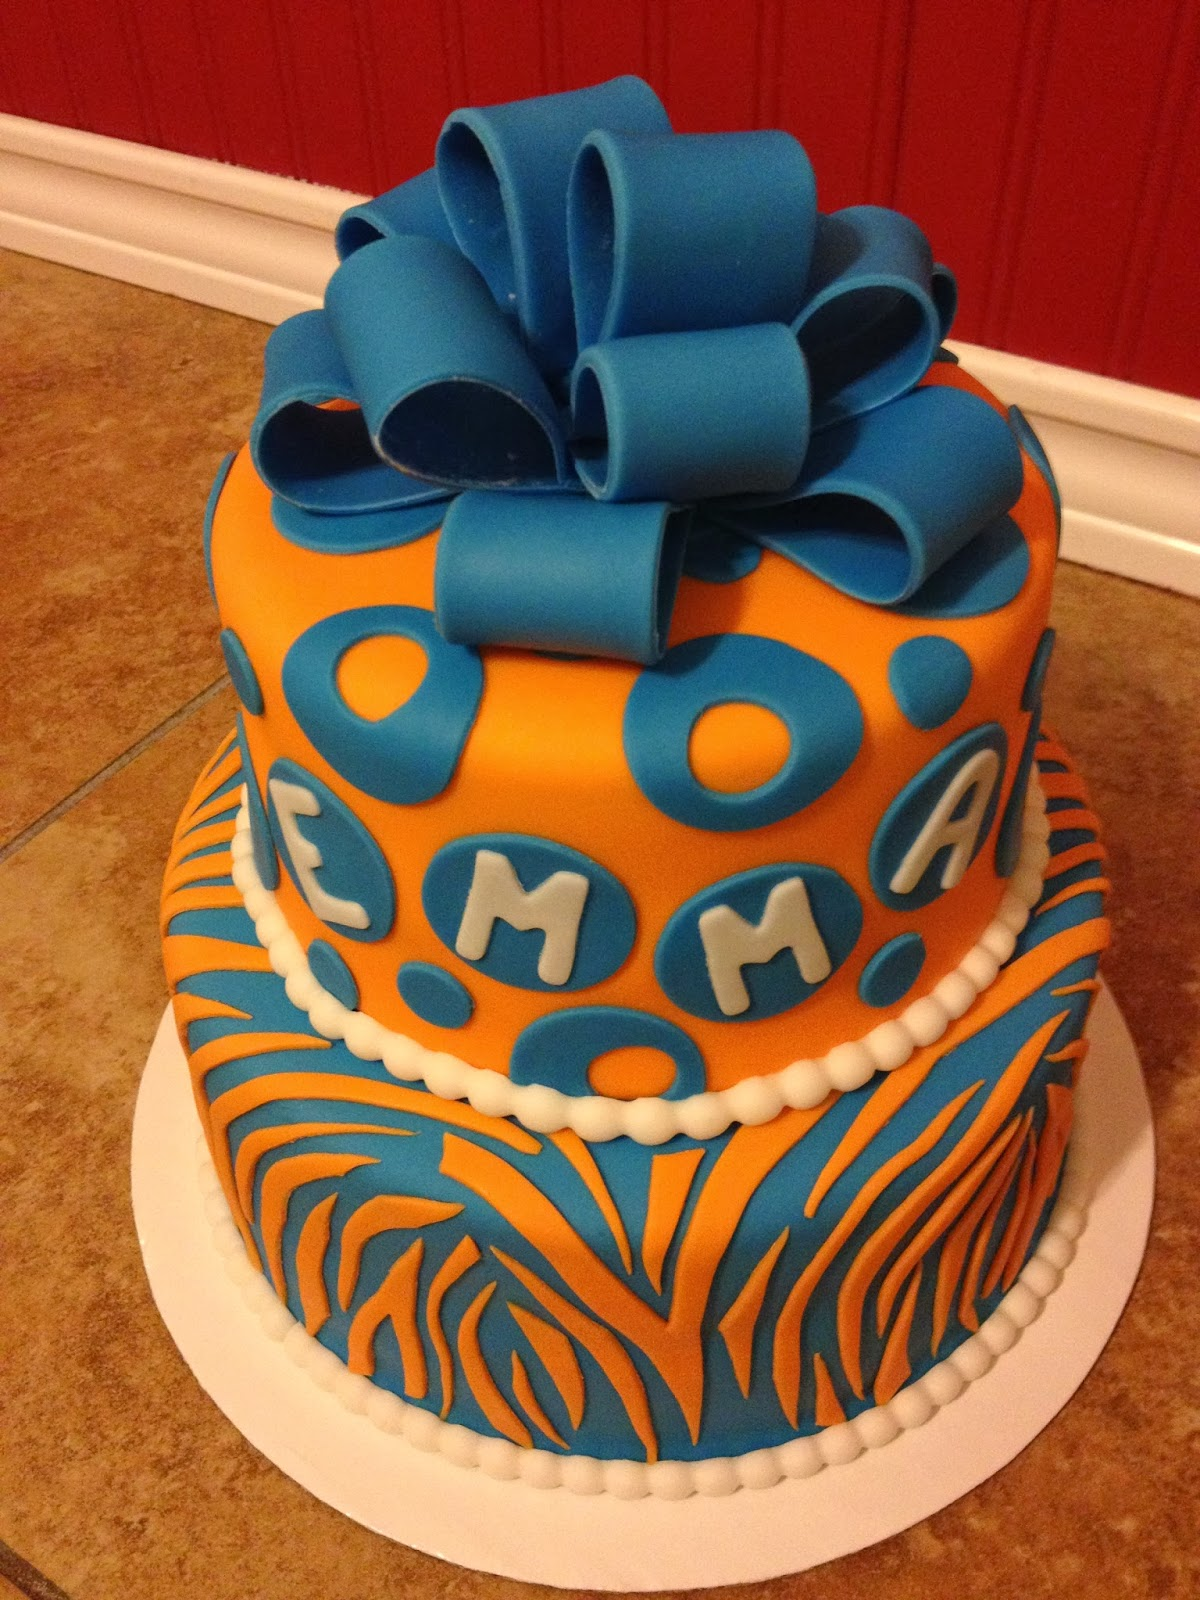 Sugar Love Cake Design Blue And Orange Zebra Stripes